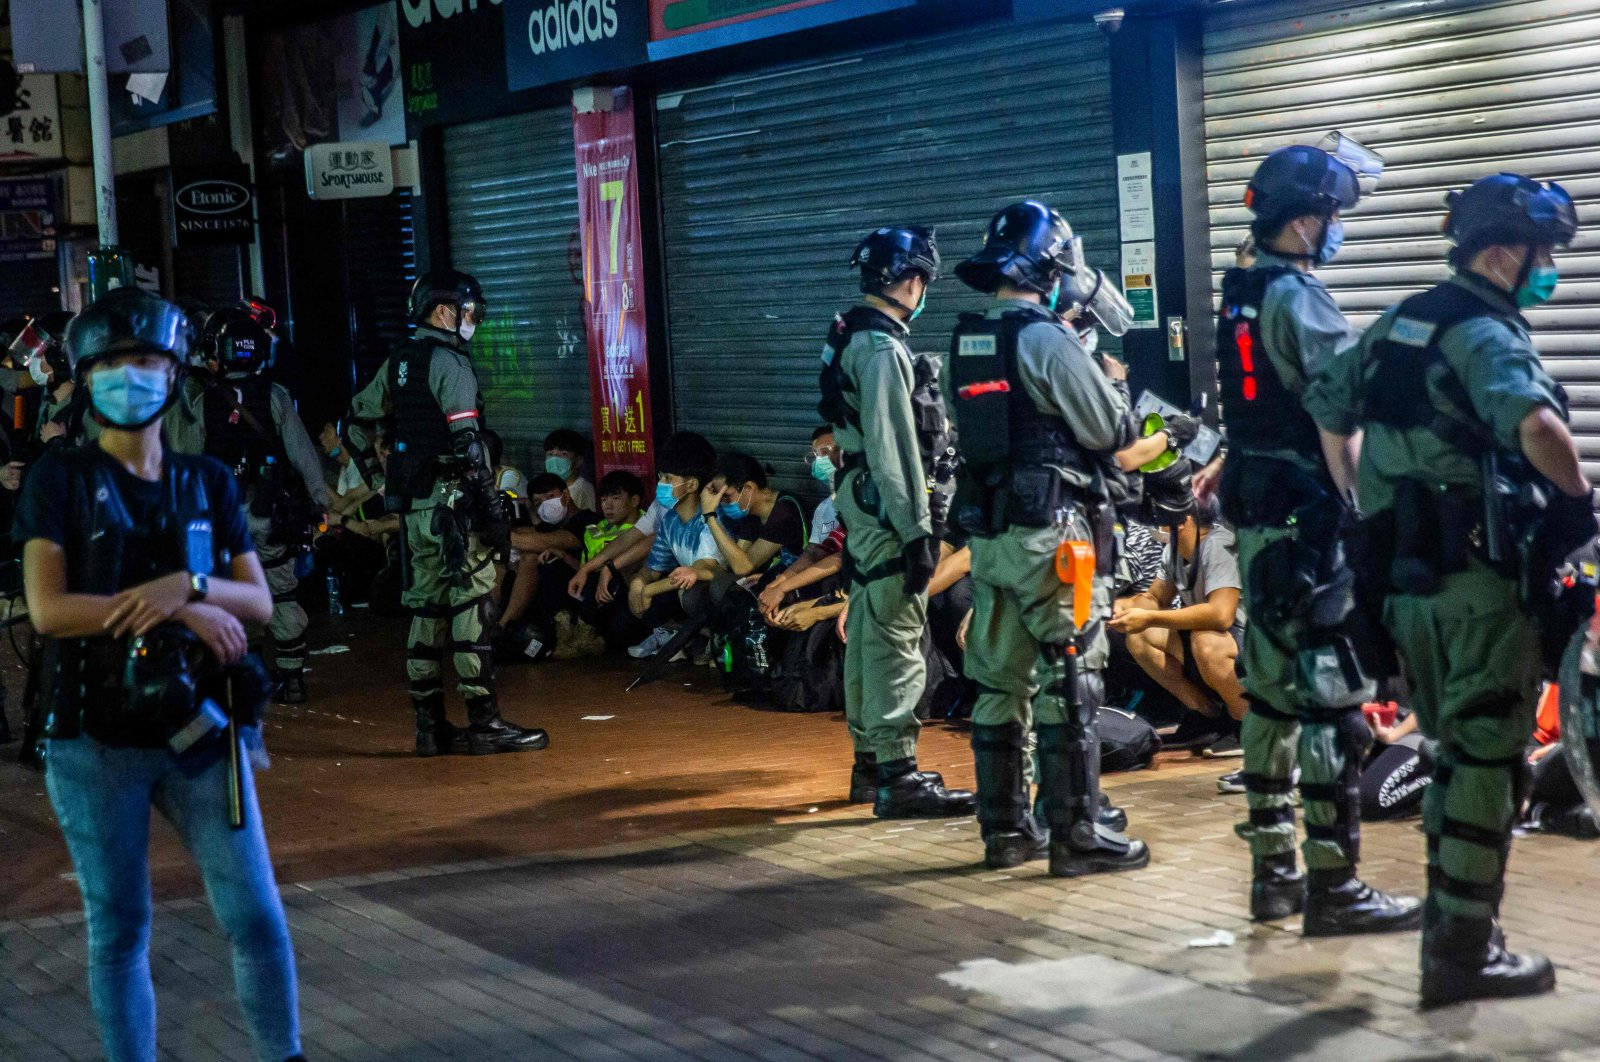 Police detain a group of people during a protest, Hong Kong, May 10, 2020. (AFP Photo)